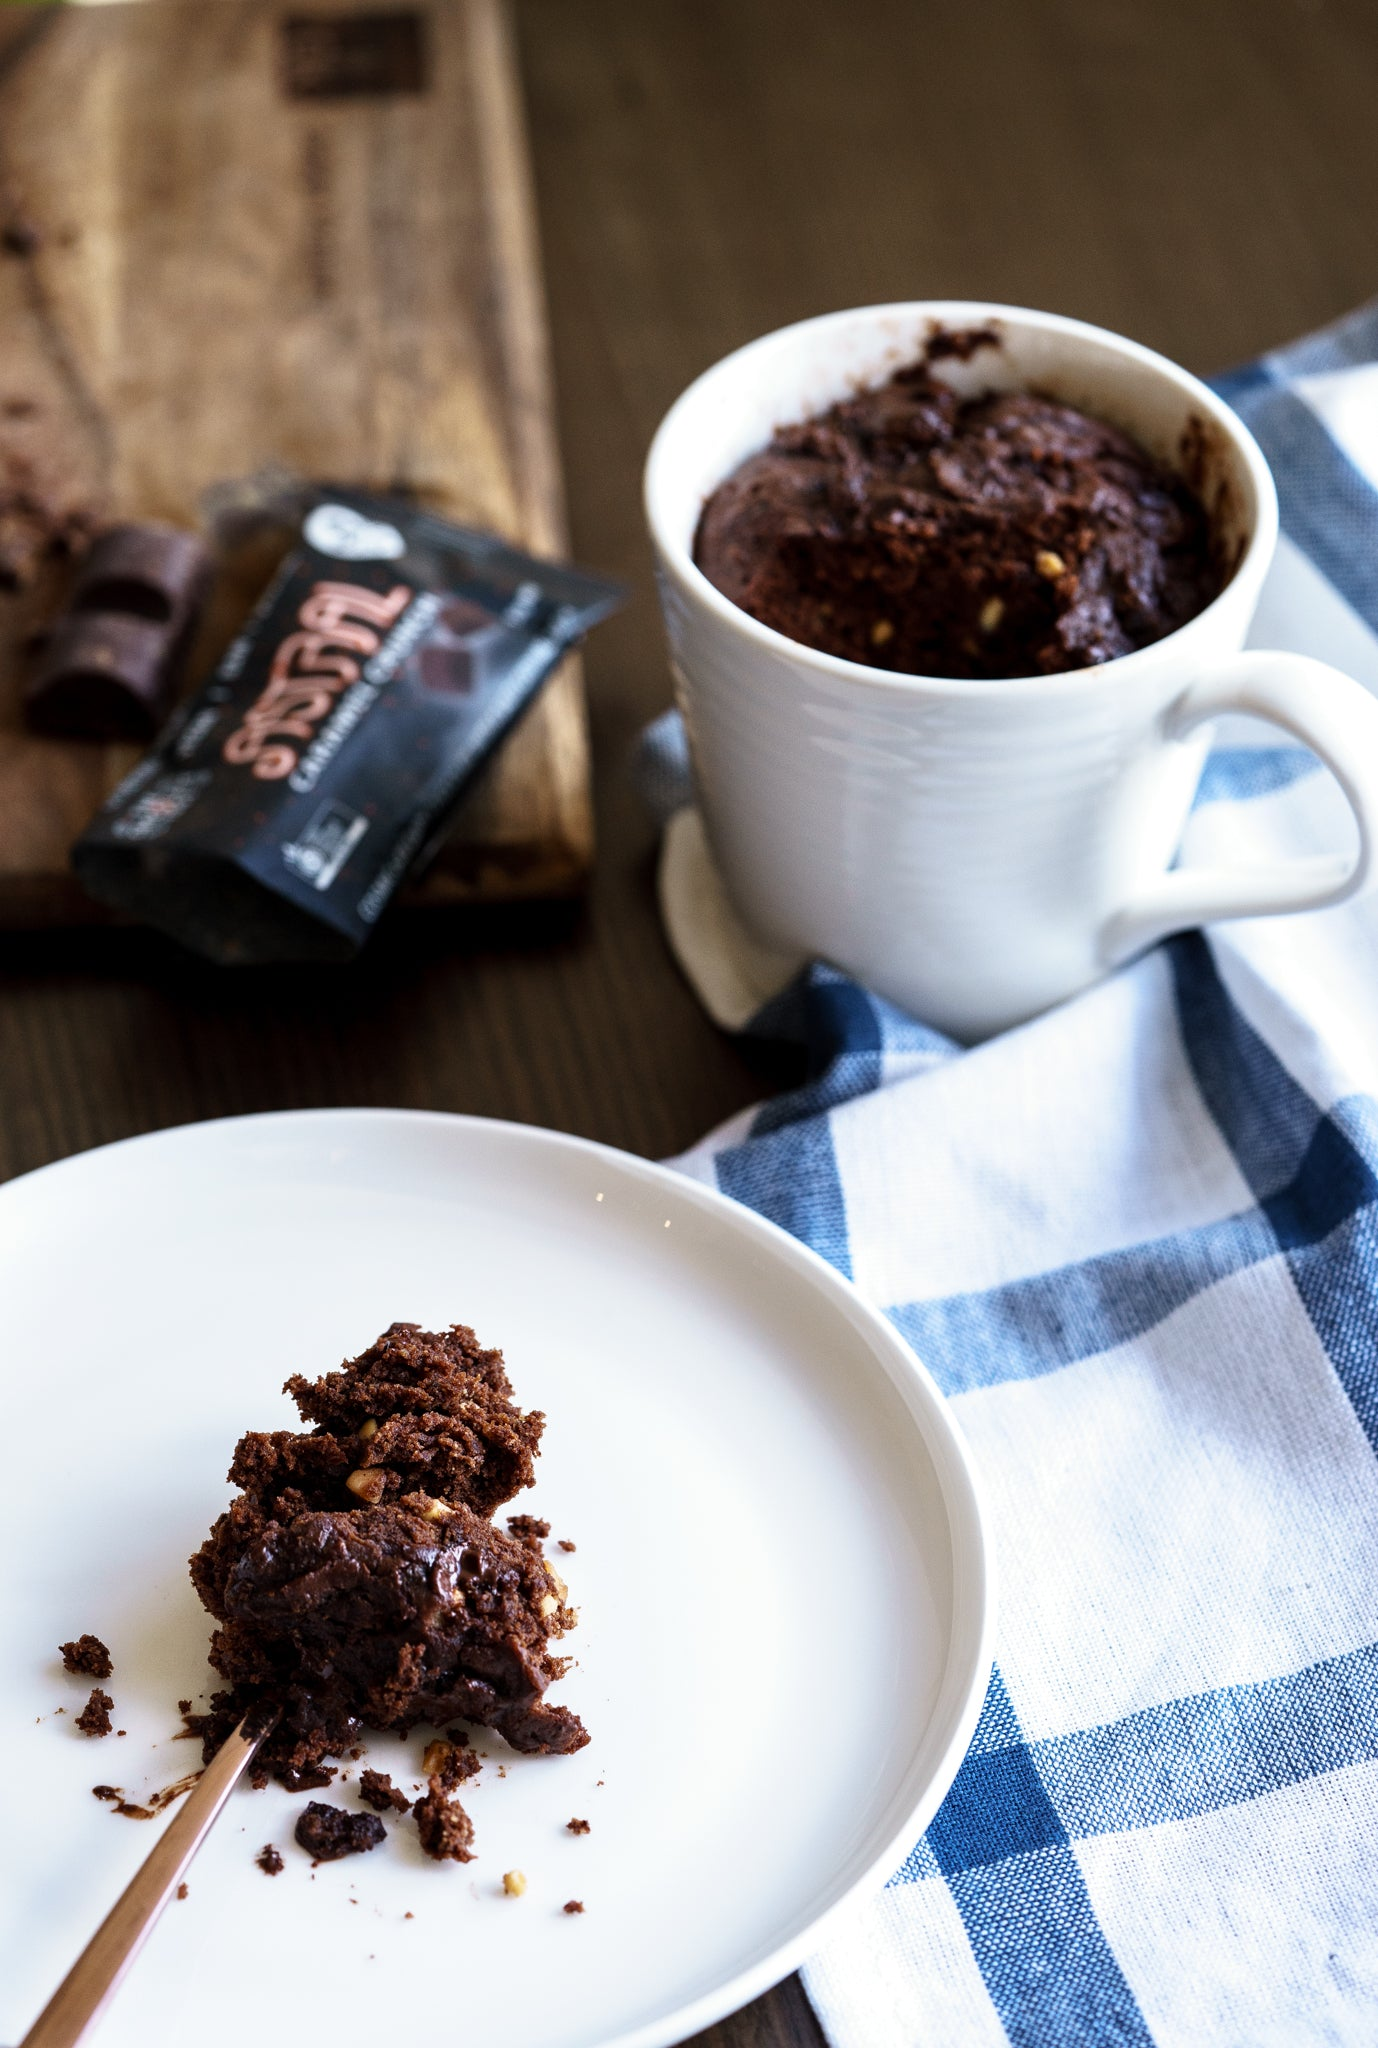 Decadent Chocolate and Peanut Butter Mug Cake (serve 2)